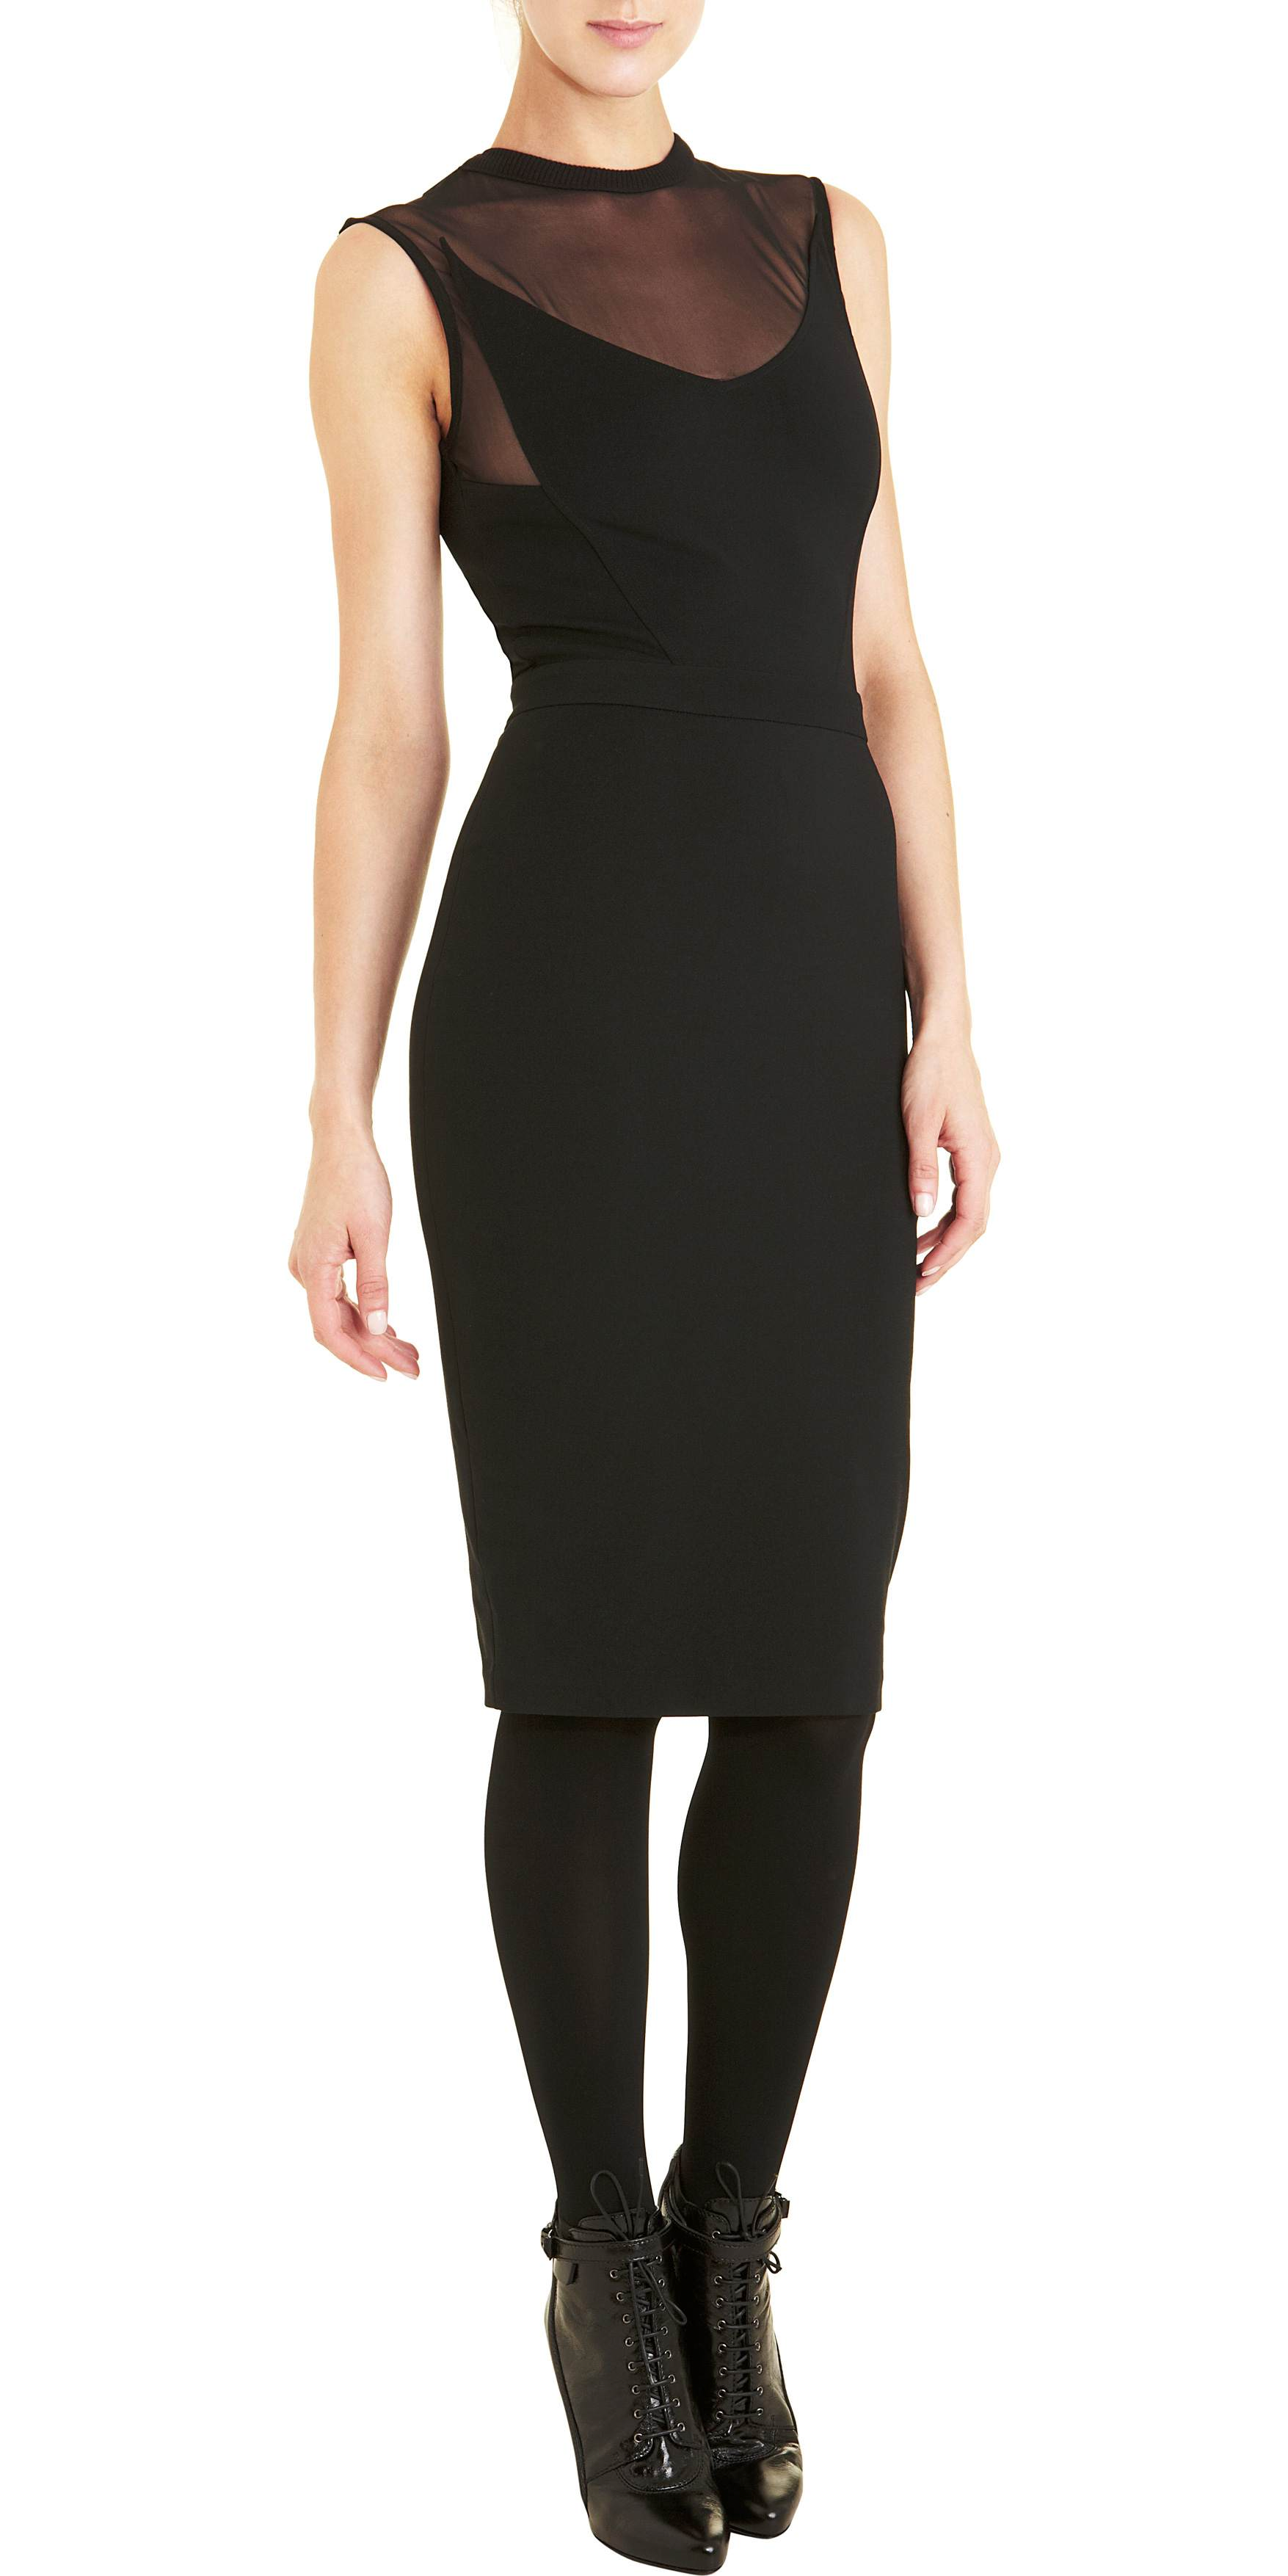 barneys_fashionphotography_new_york_city_lbd.jpg